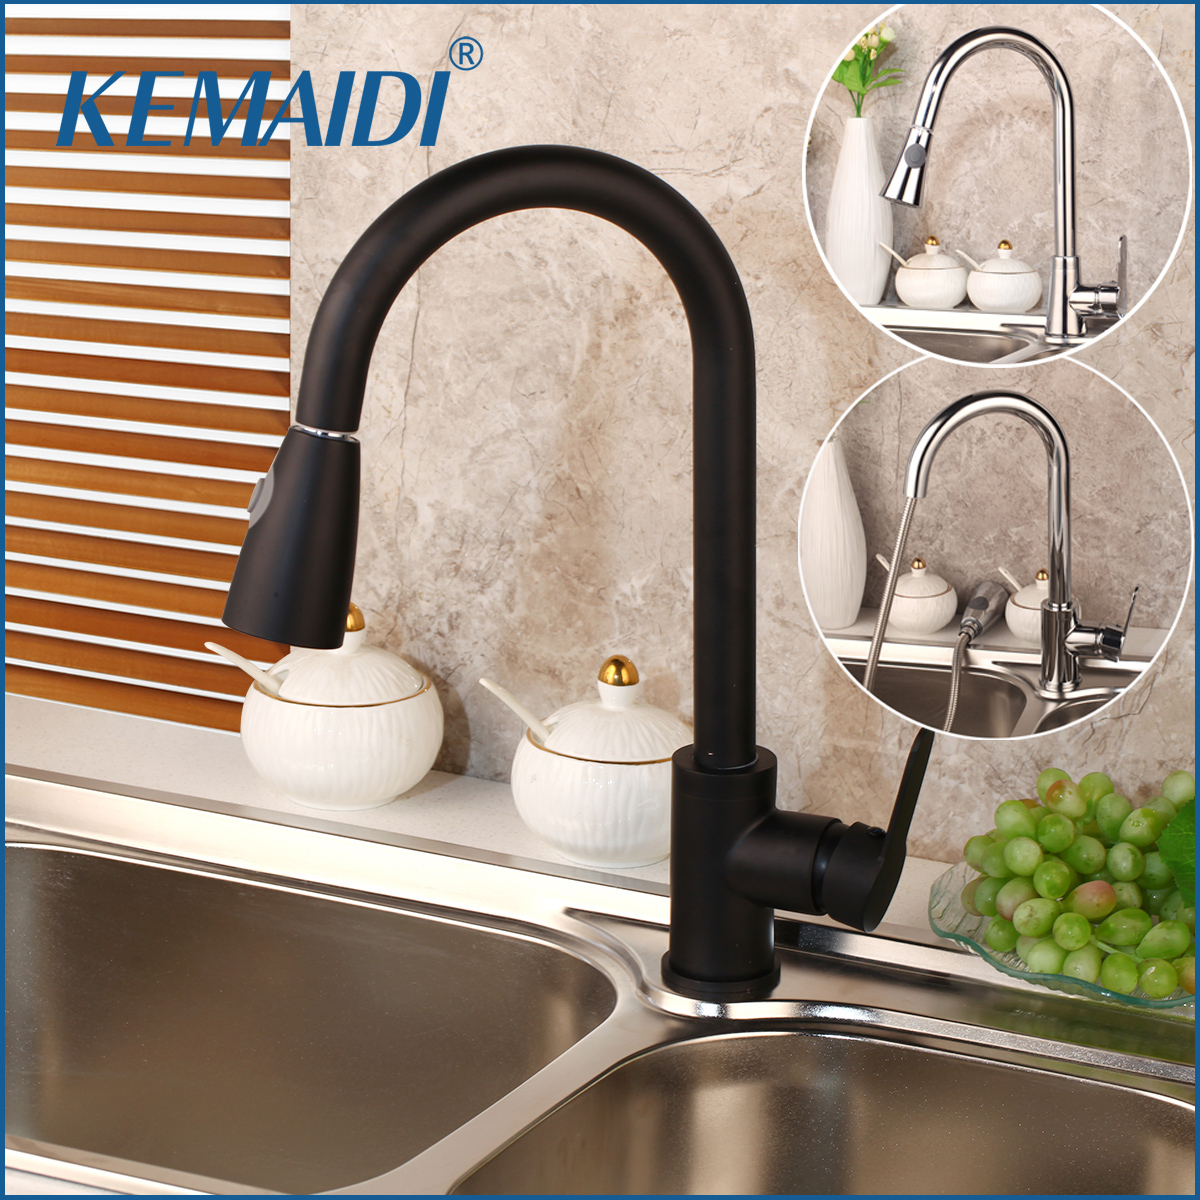 360 Swivel Kitchen Faucet Pull Out Chrome Polished Black Nickel Brush Basin Faucet Stream Spray Water